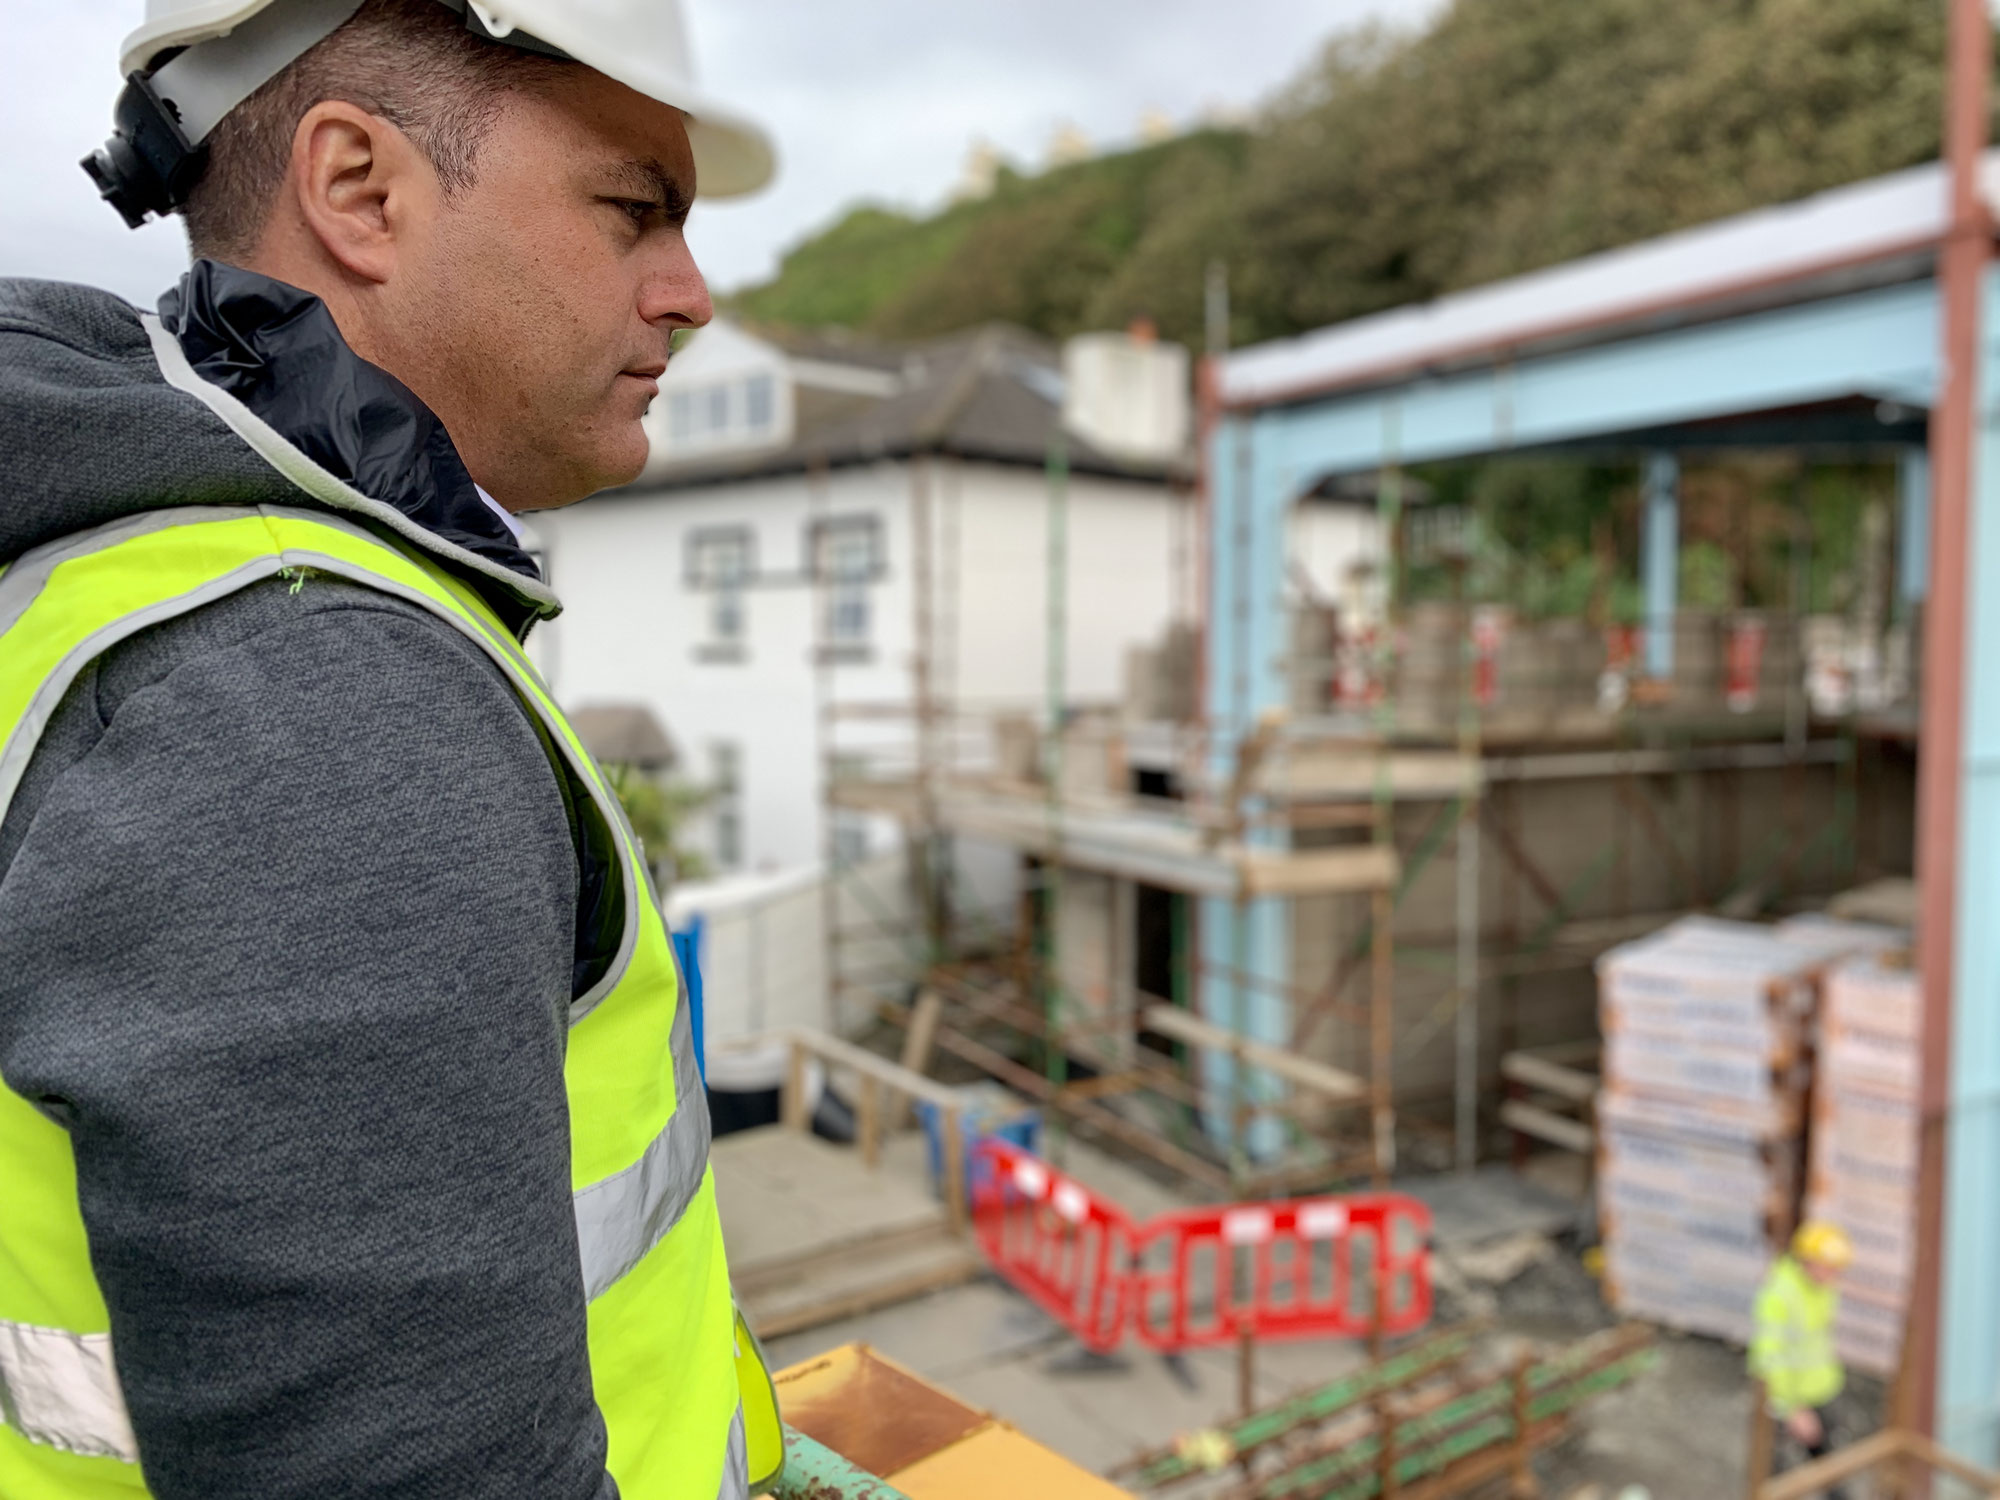 The construction of the new horse tram depot redevelopment in the Isle of Man designed by Modus Architects has been officially started